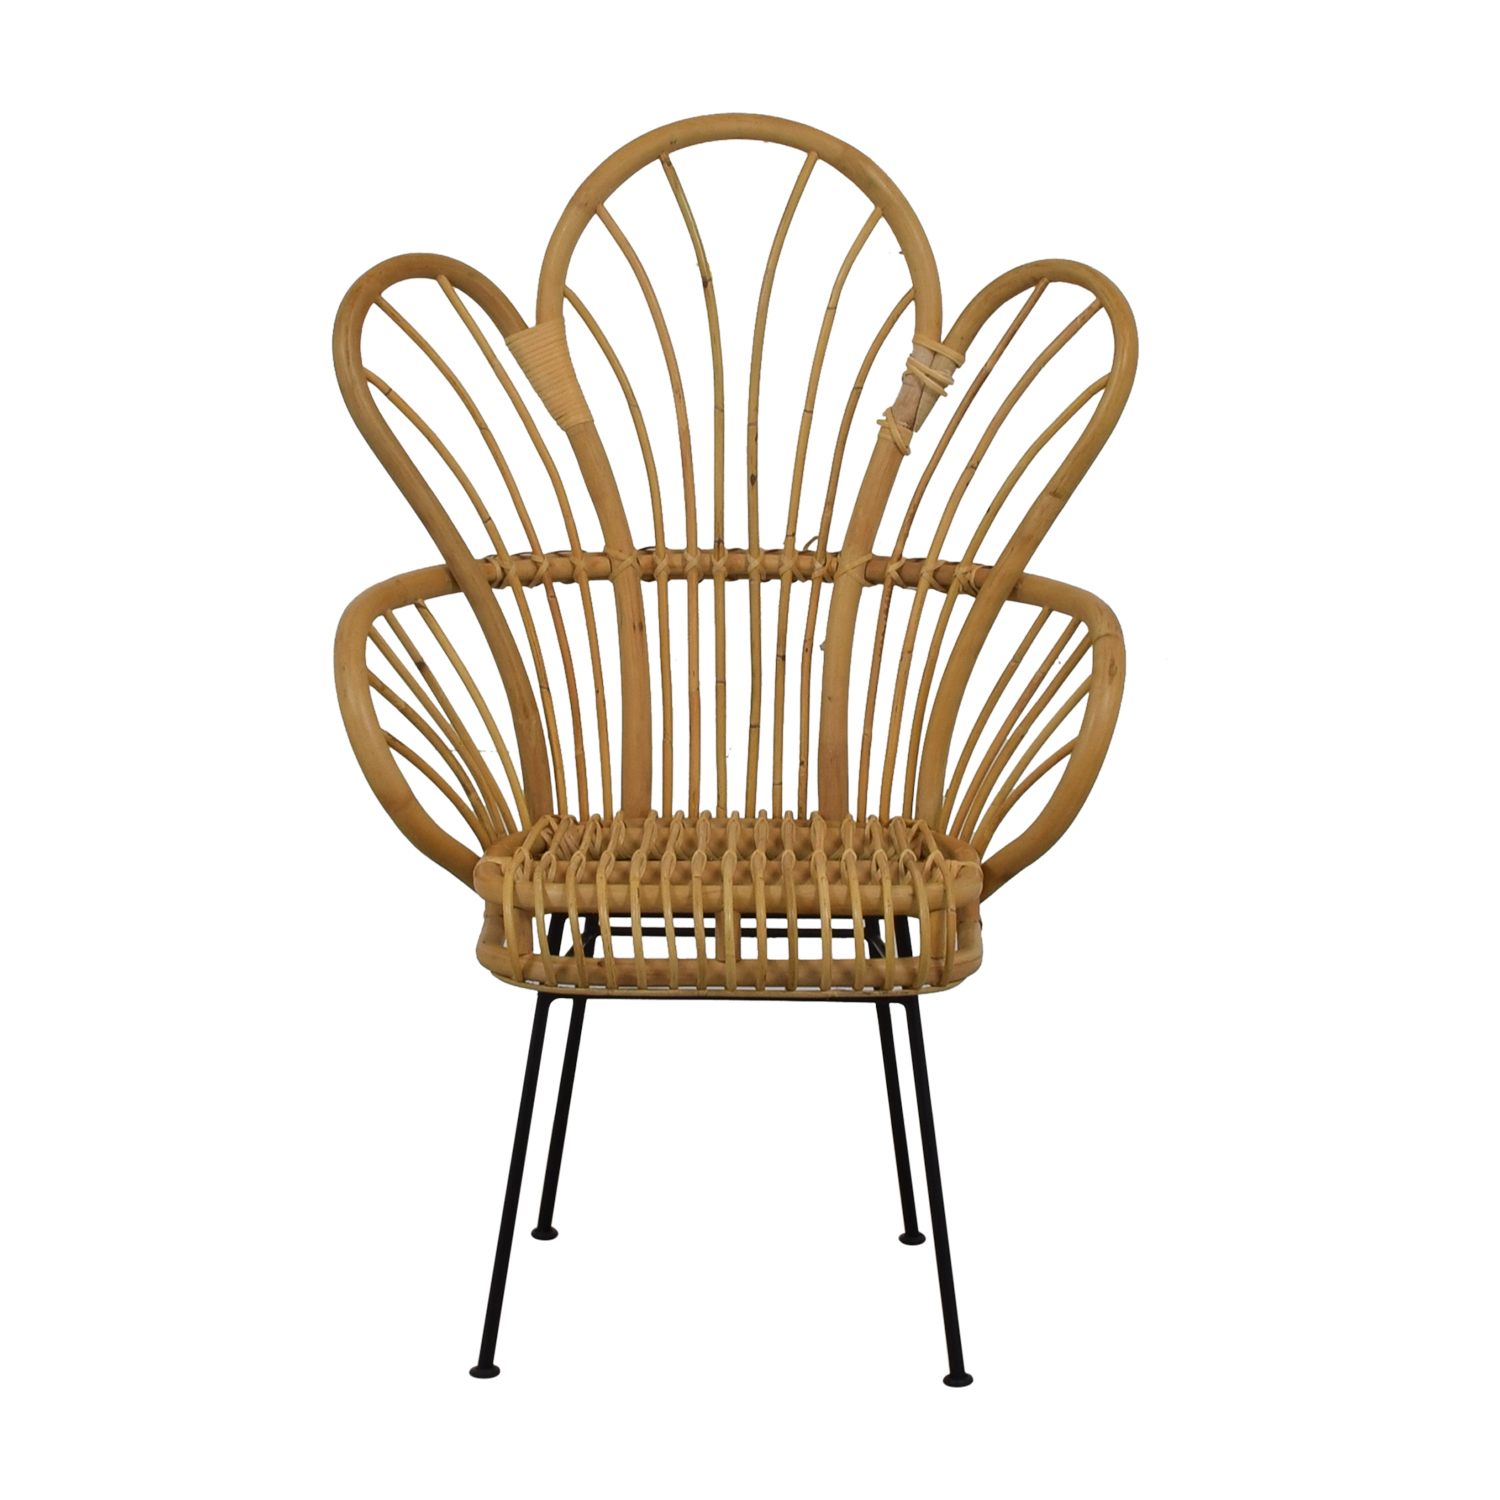 Bamboo Chairs 76 Off Bamboo Bohemian Fan Accent Chair Chairs